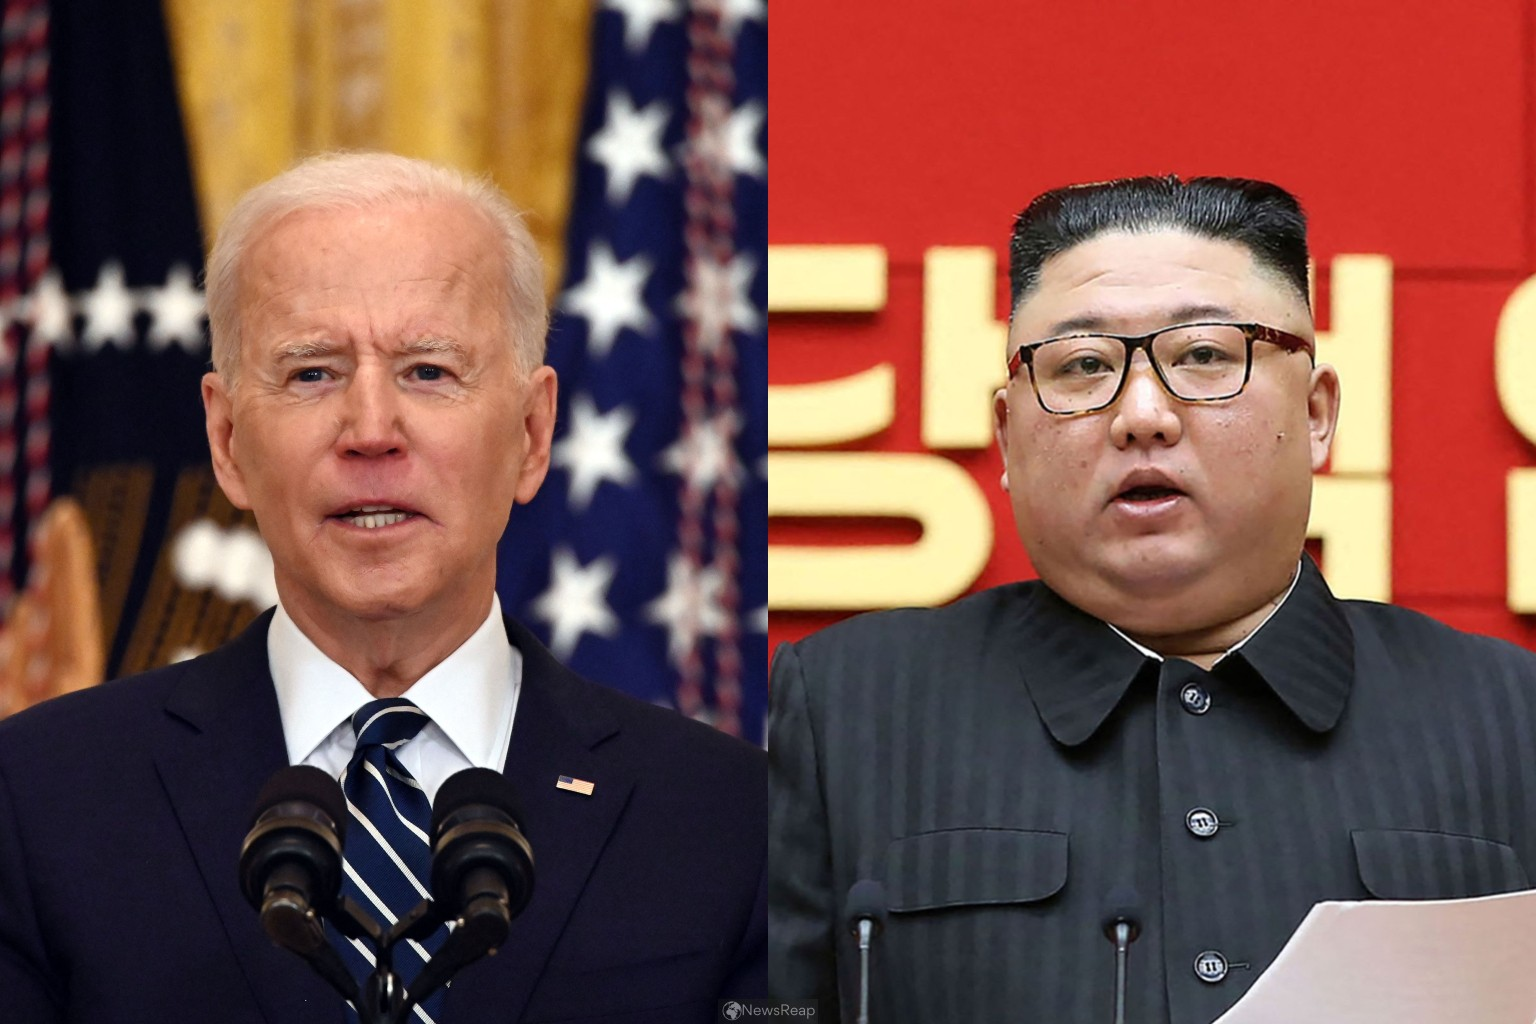 Biden does not intend to meet with North Korea's Kim